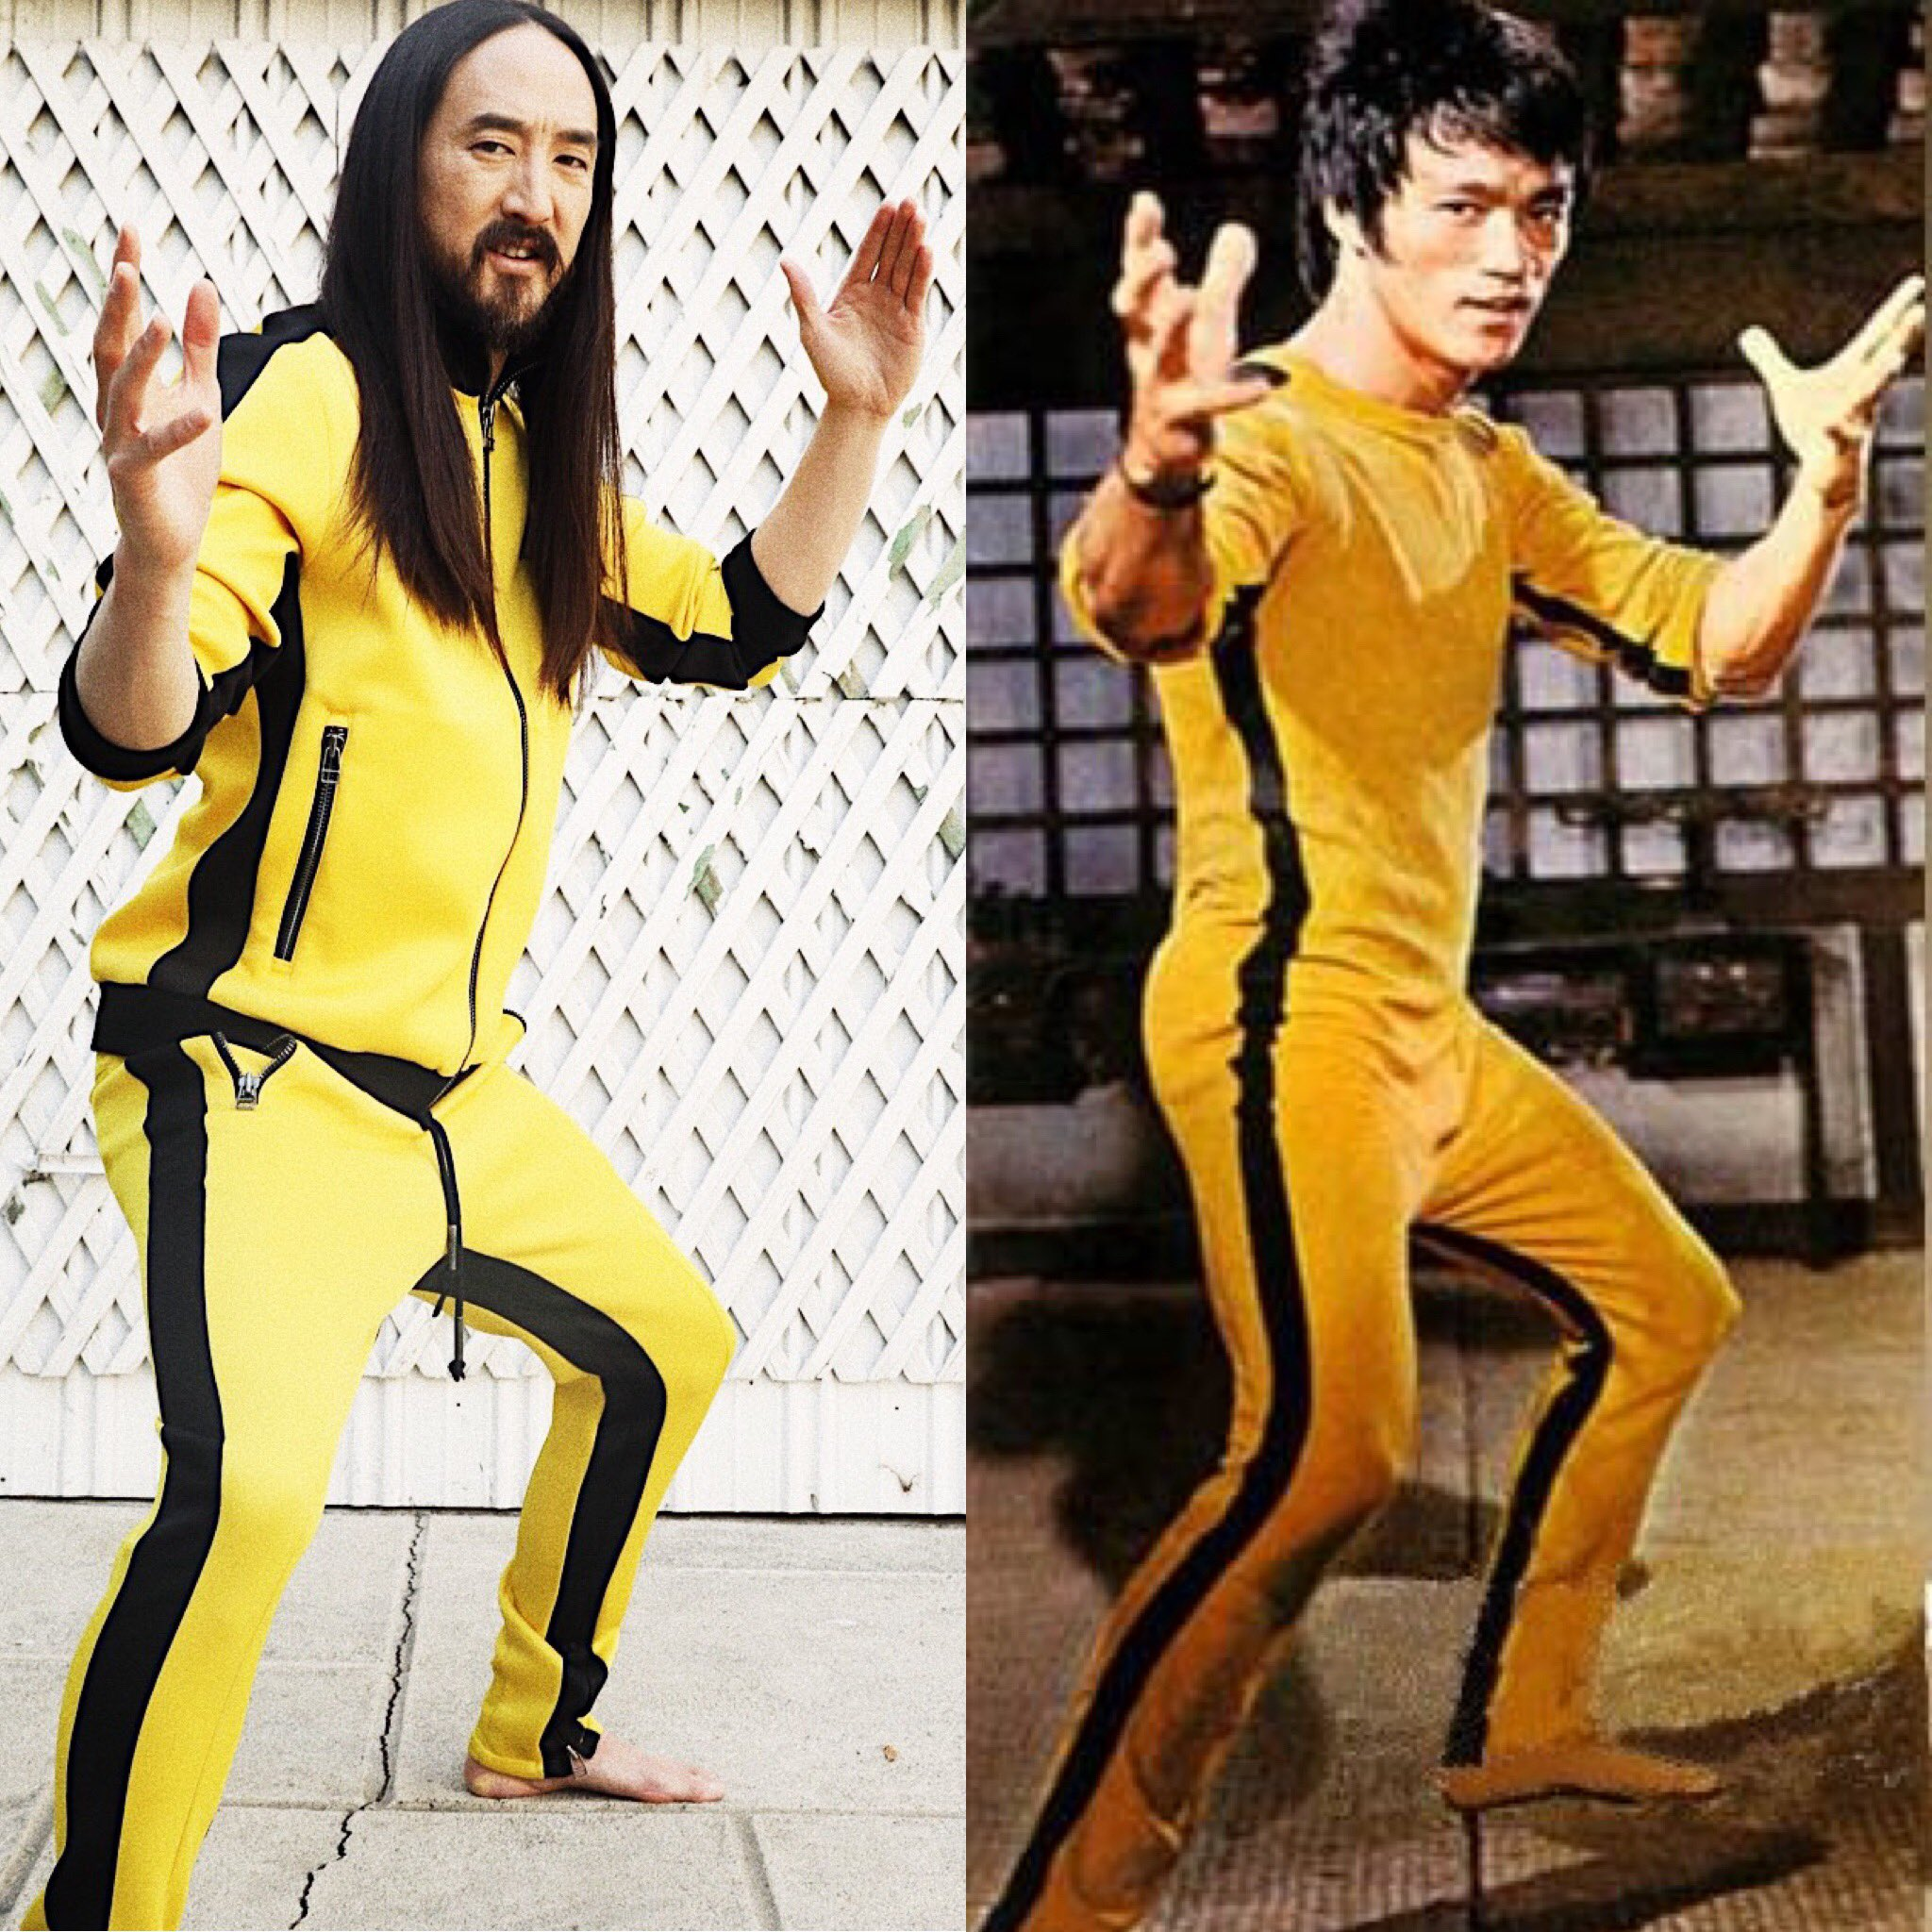 Happy birthday to the Goat of Goats my hero my inspiration since I was a lil beepy bopper @brucelee https://t.co/okUl2u8Zrv